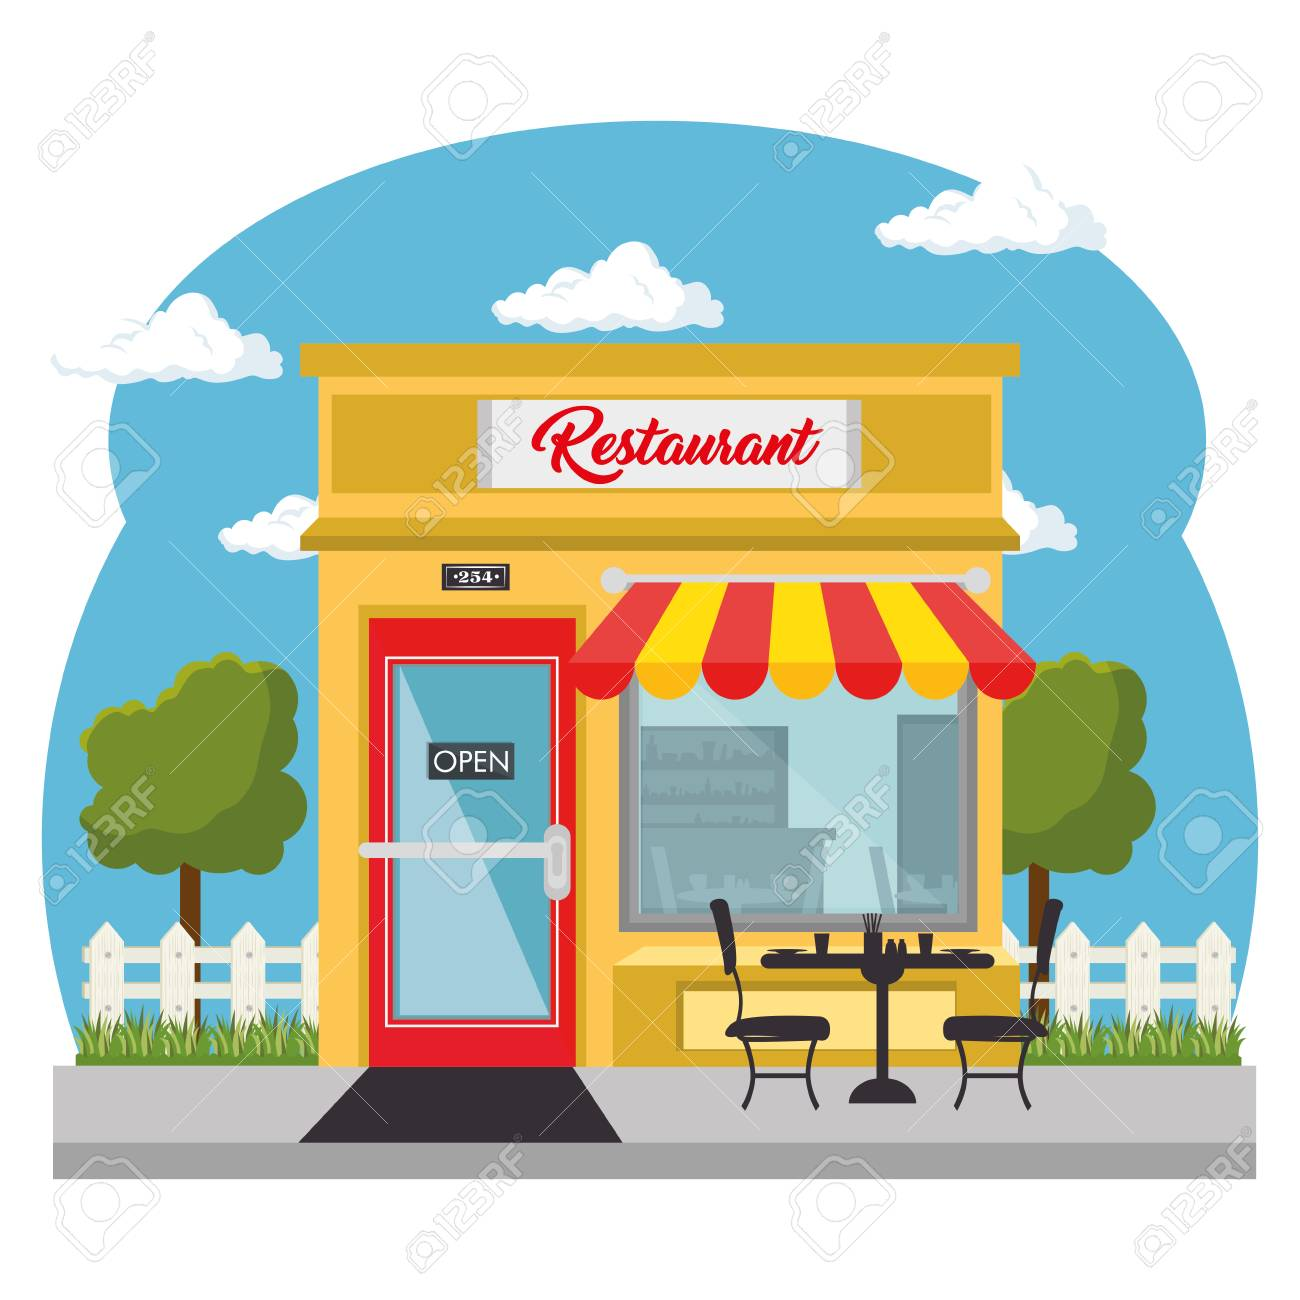 Seen From Outside Restaurant With Red And Yellow Awning And Royalty Free Cliparts Vectors And Stock Illustration Image 78102490